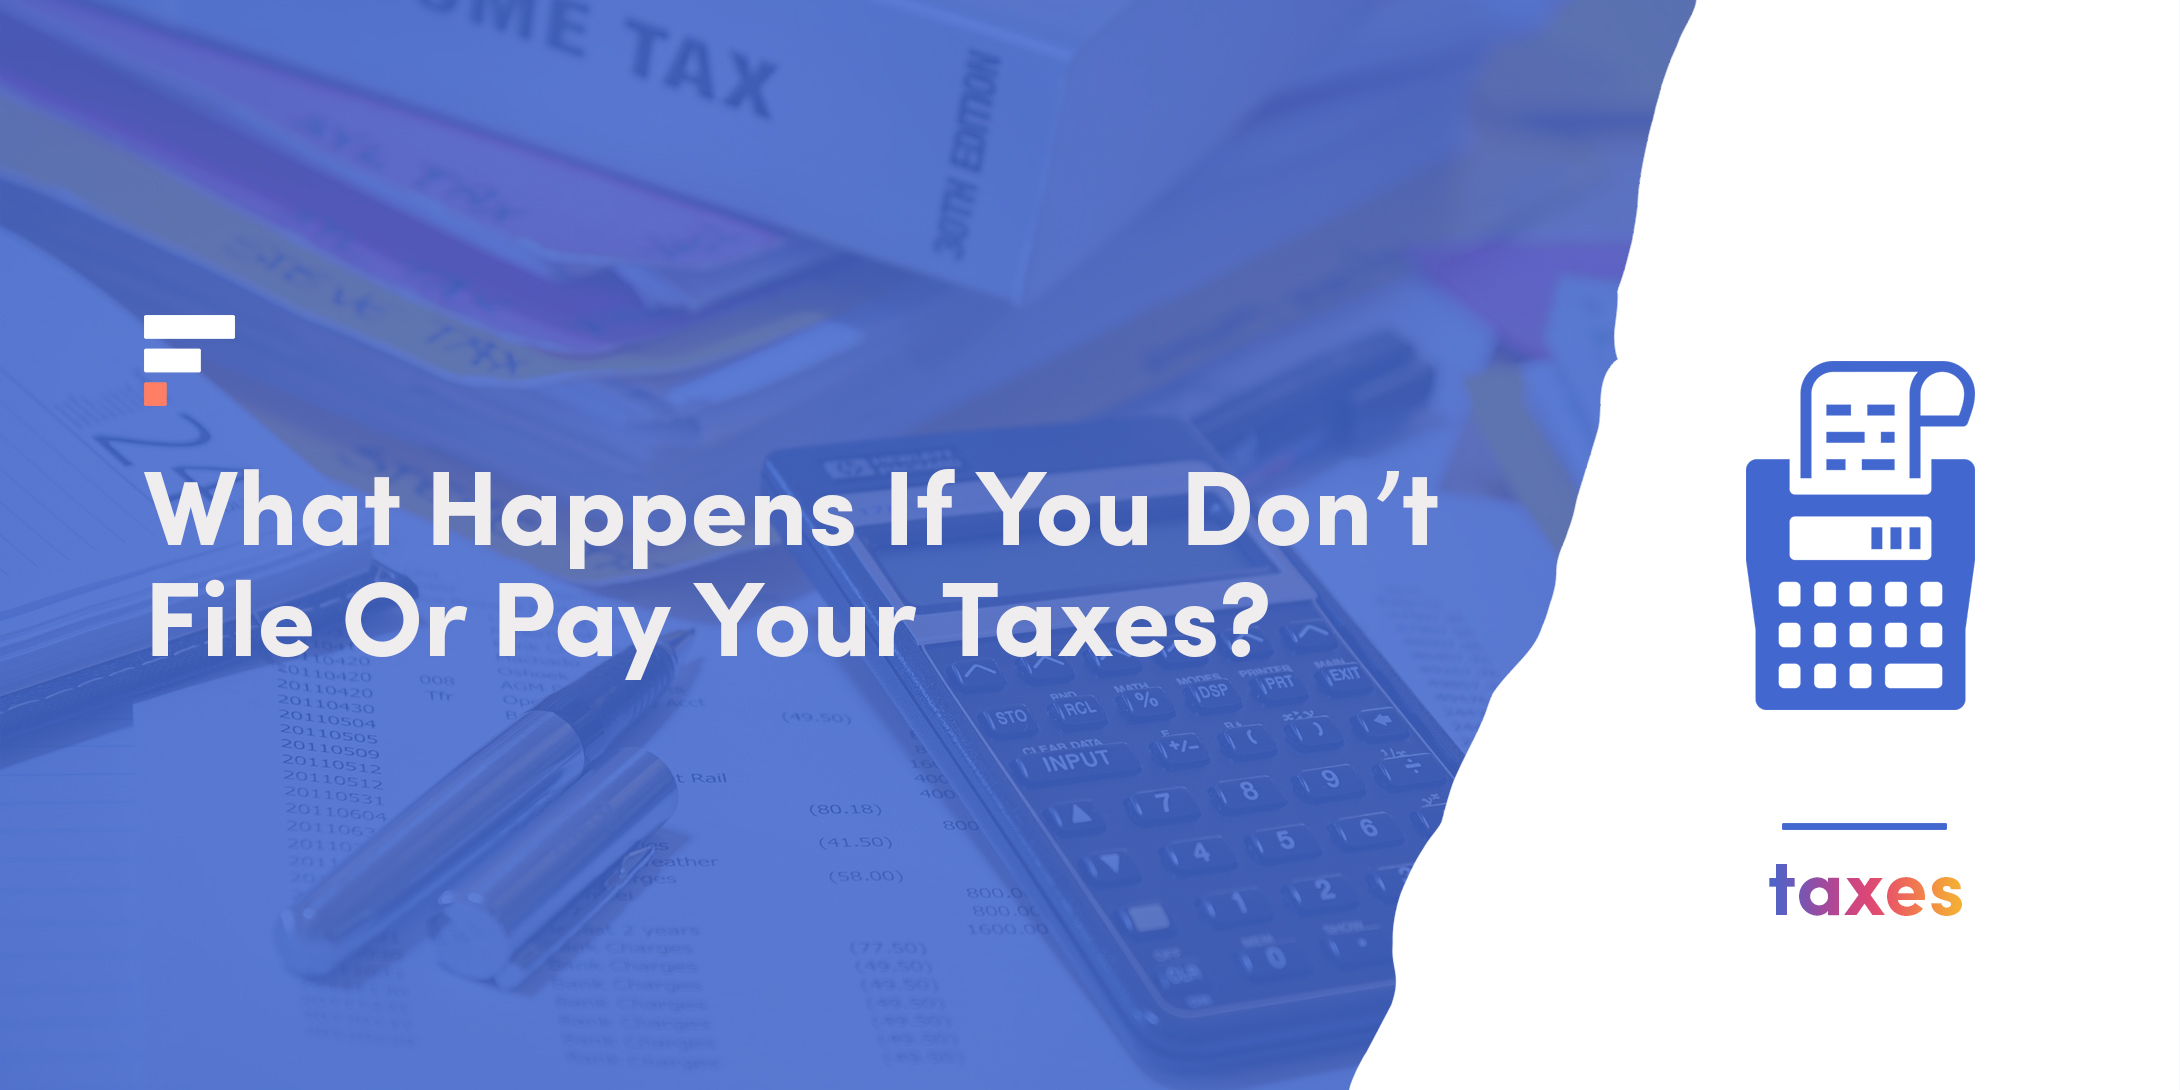 What happens if you don't file or pay your taxes